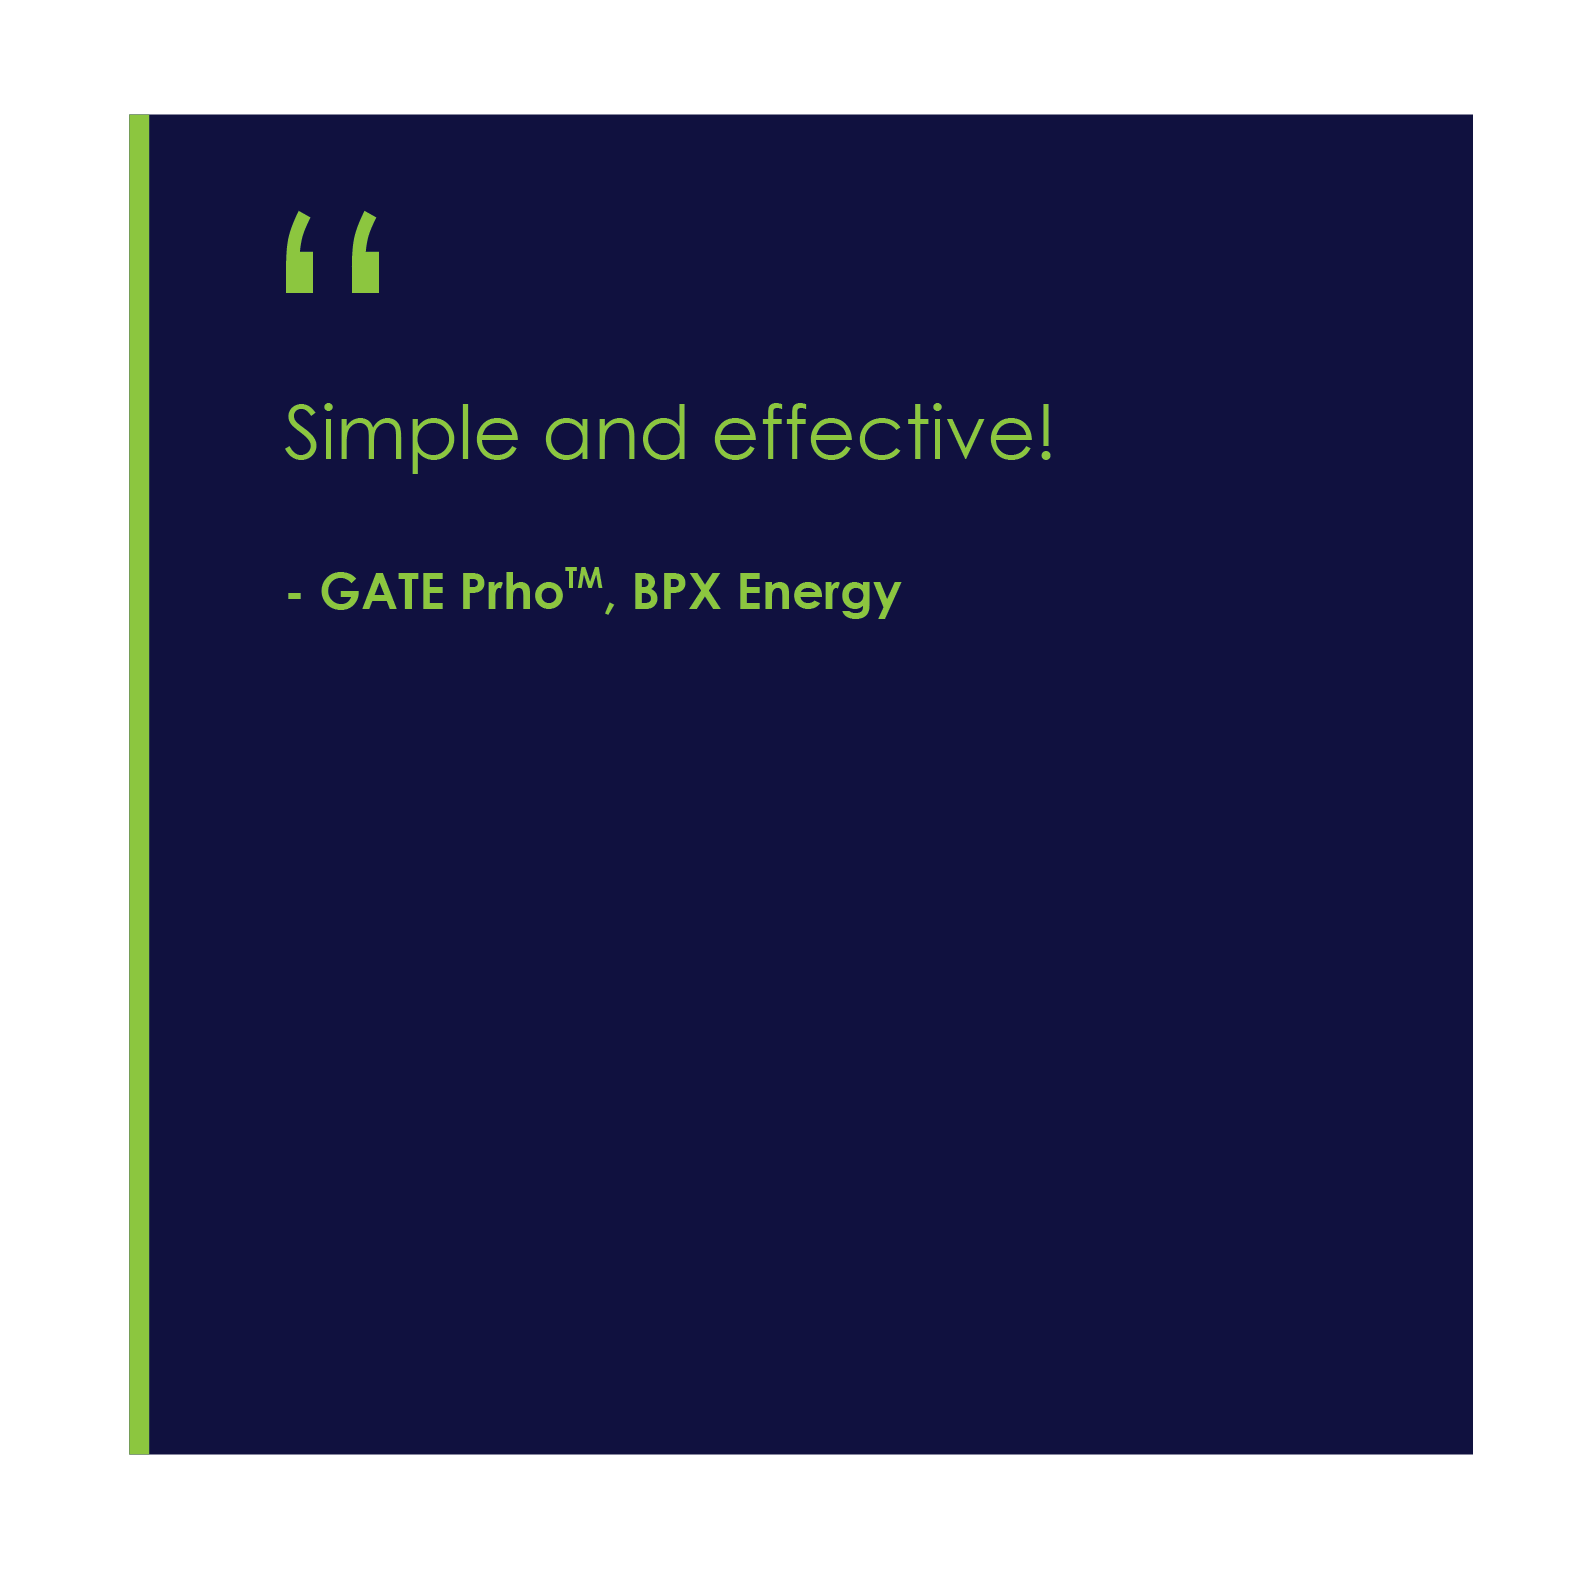 GATE Energy Website Quotes - 15-11.png